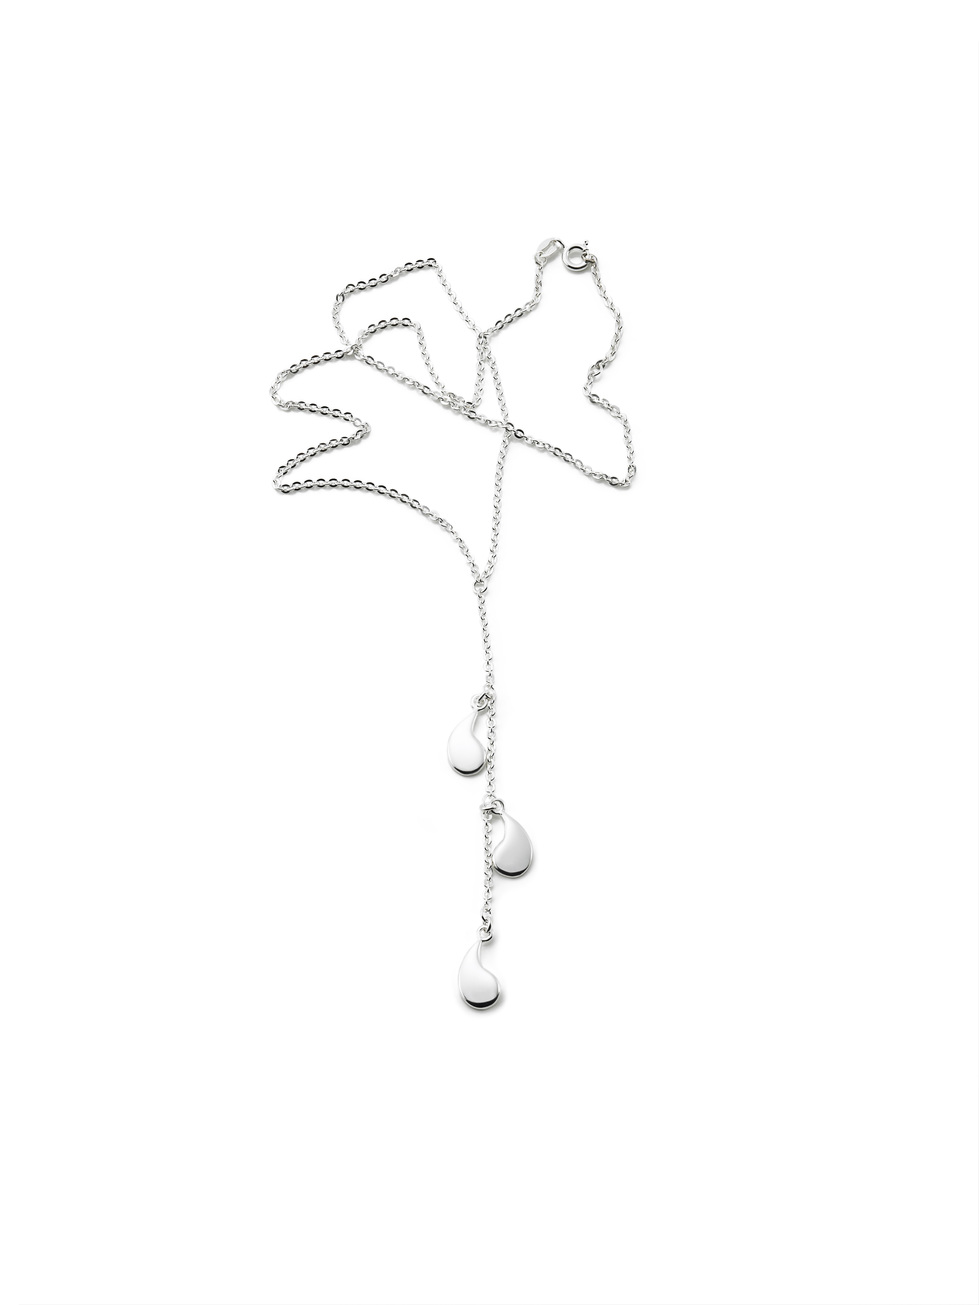 Waterfall Necklace 10-100-00417(1)